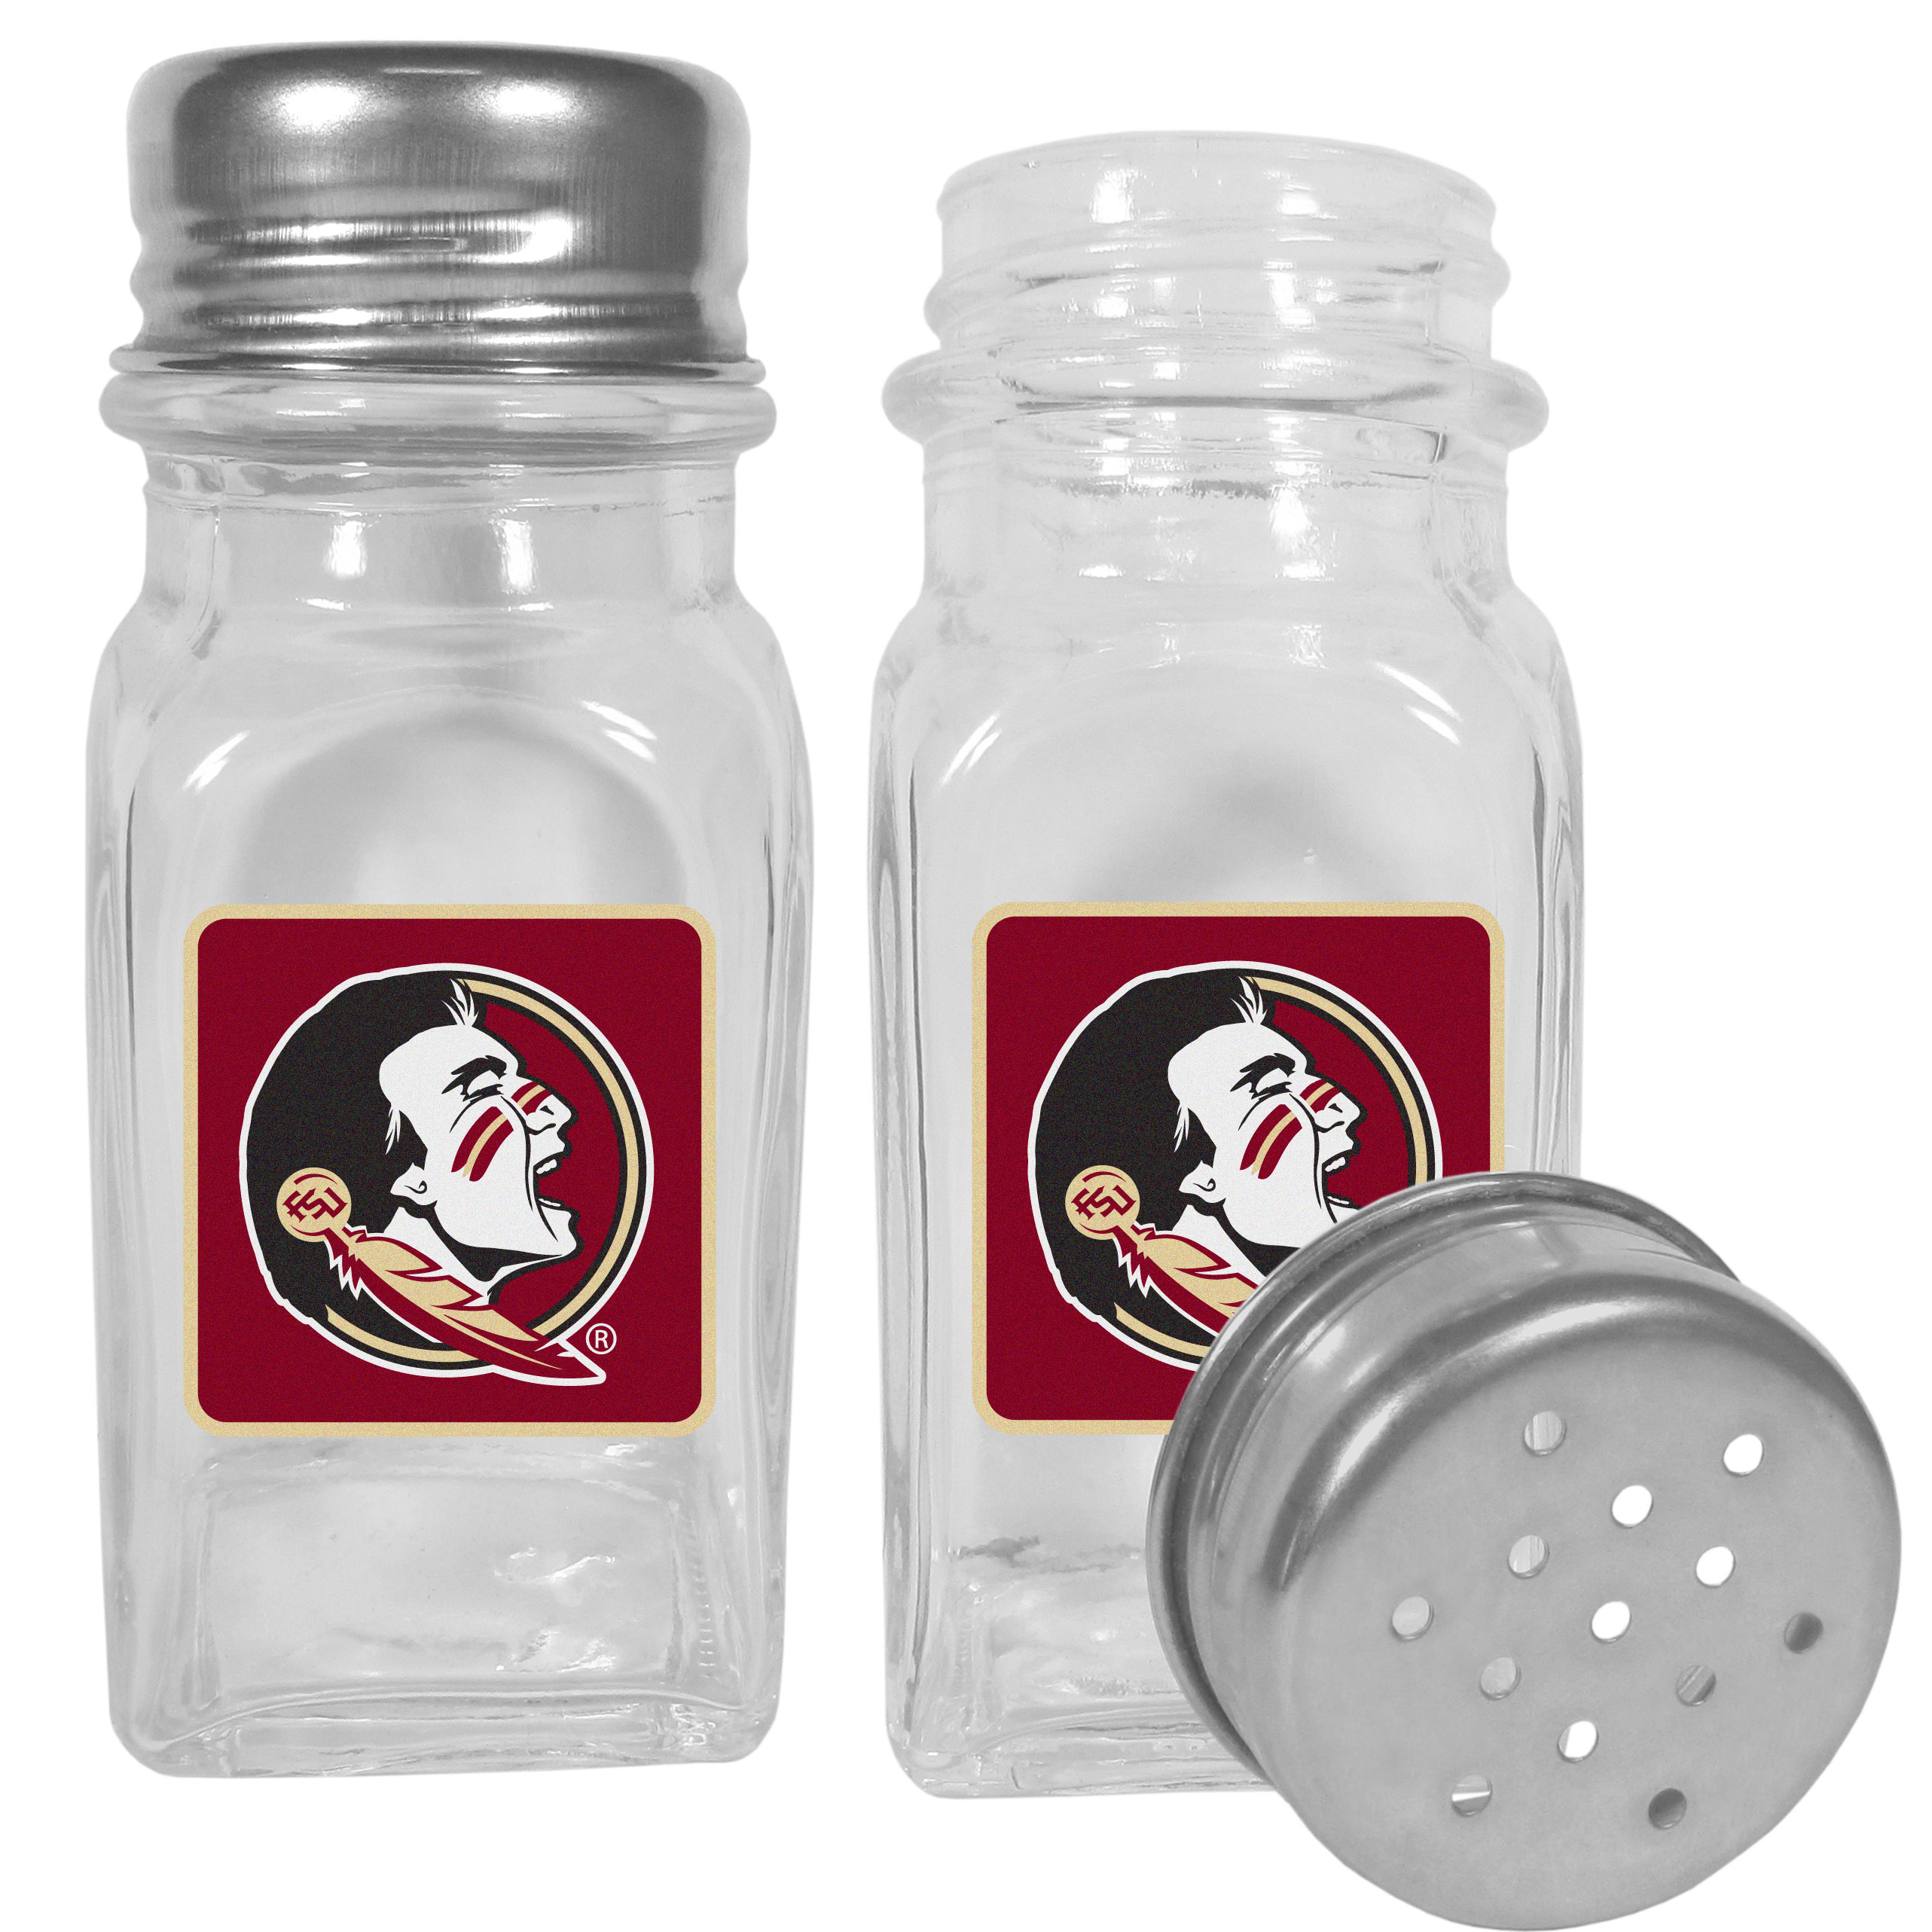 Florida St. Seminoles Graphics Salt and Pepper Shaker - No tailgate party is complete without your Florida St. Seminoles salt & pepper shakers featuring bright team logos. The diner replica salt and pepper shakers are glass with screw top lids. These team shakers are a great grill accessory whether you are barbecuing on the patio, picnicing or having a game day party.